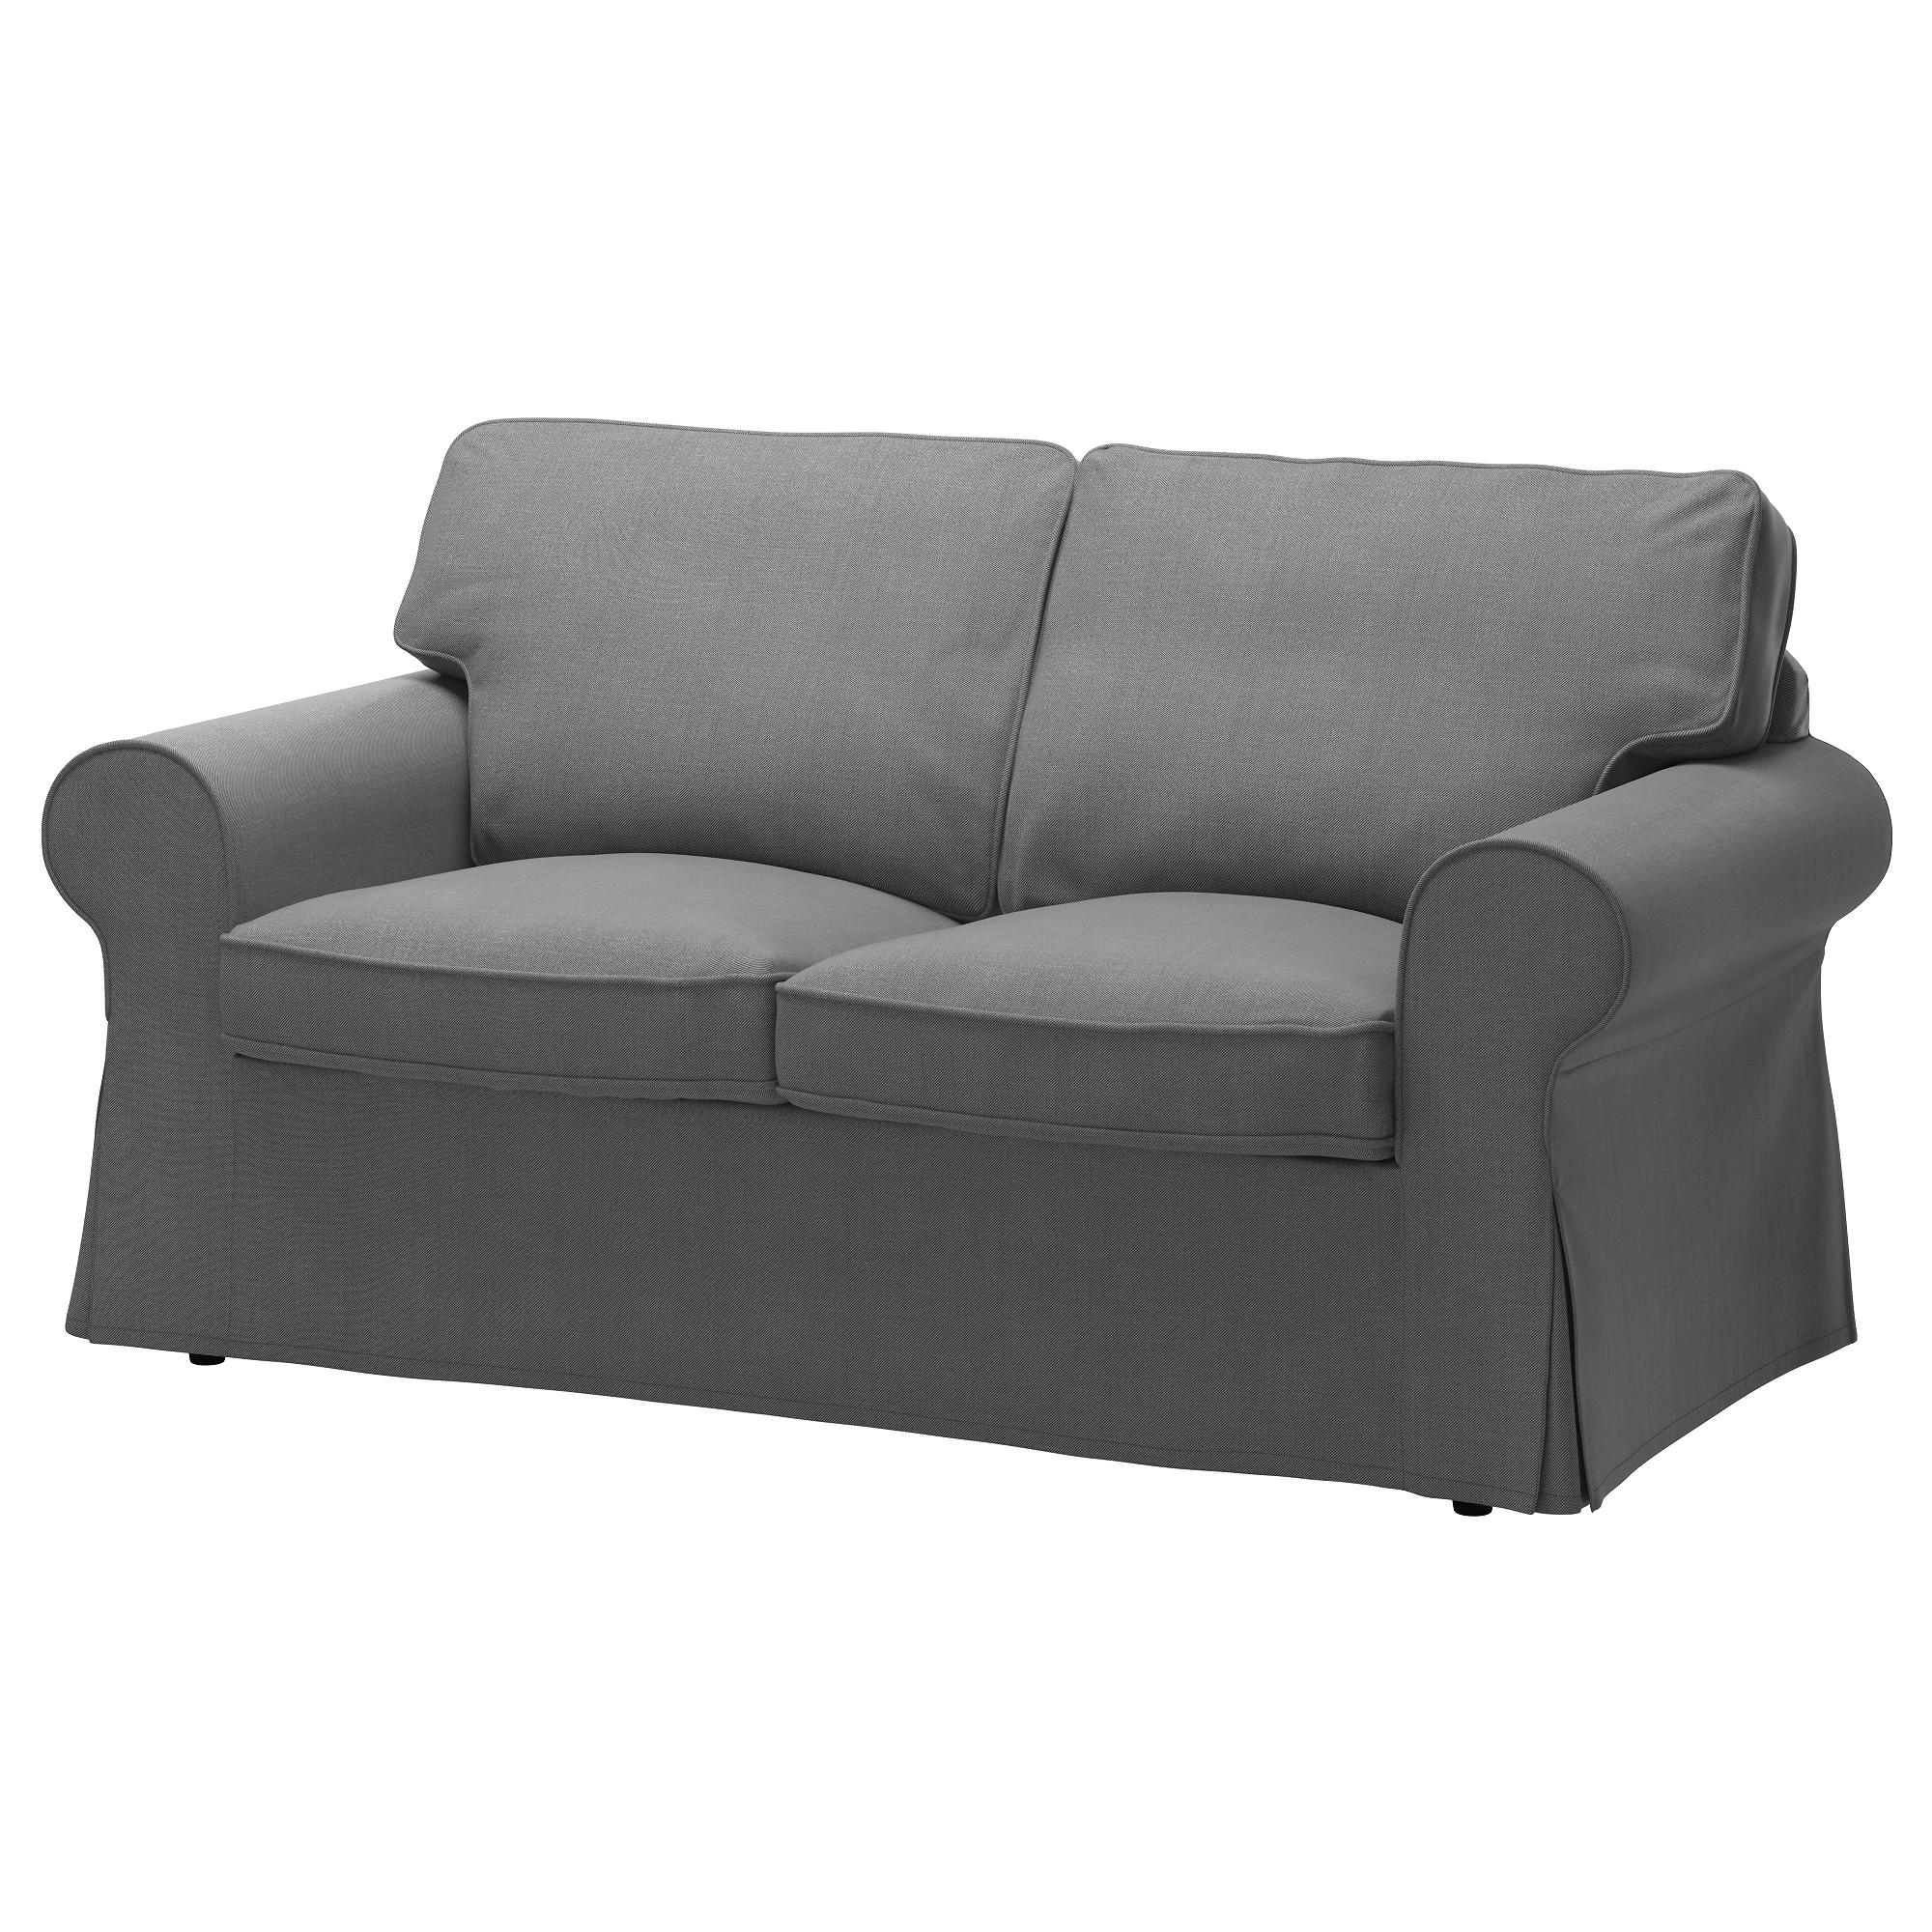 Small Sofa & 2 Seater Sofa | Ikea In 2 Seater Sofas (View 3 of 20)